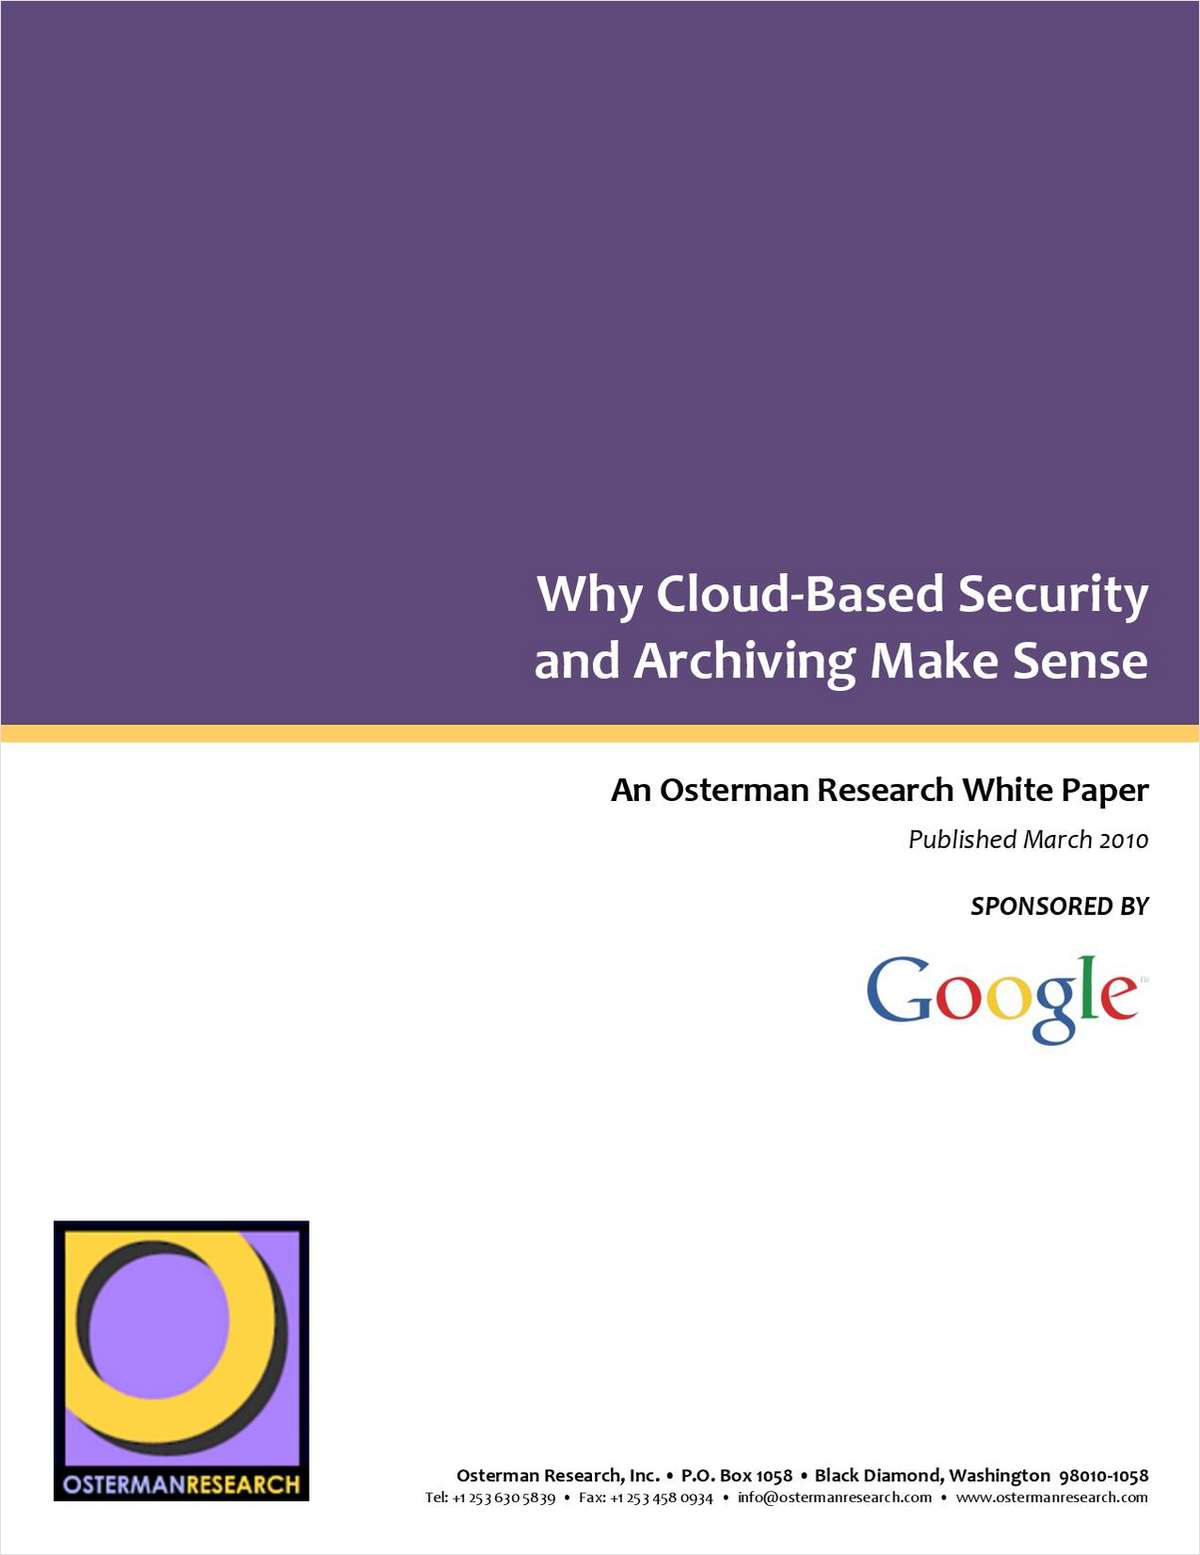 Why Cloud-Based Security and Archiving Make Sense